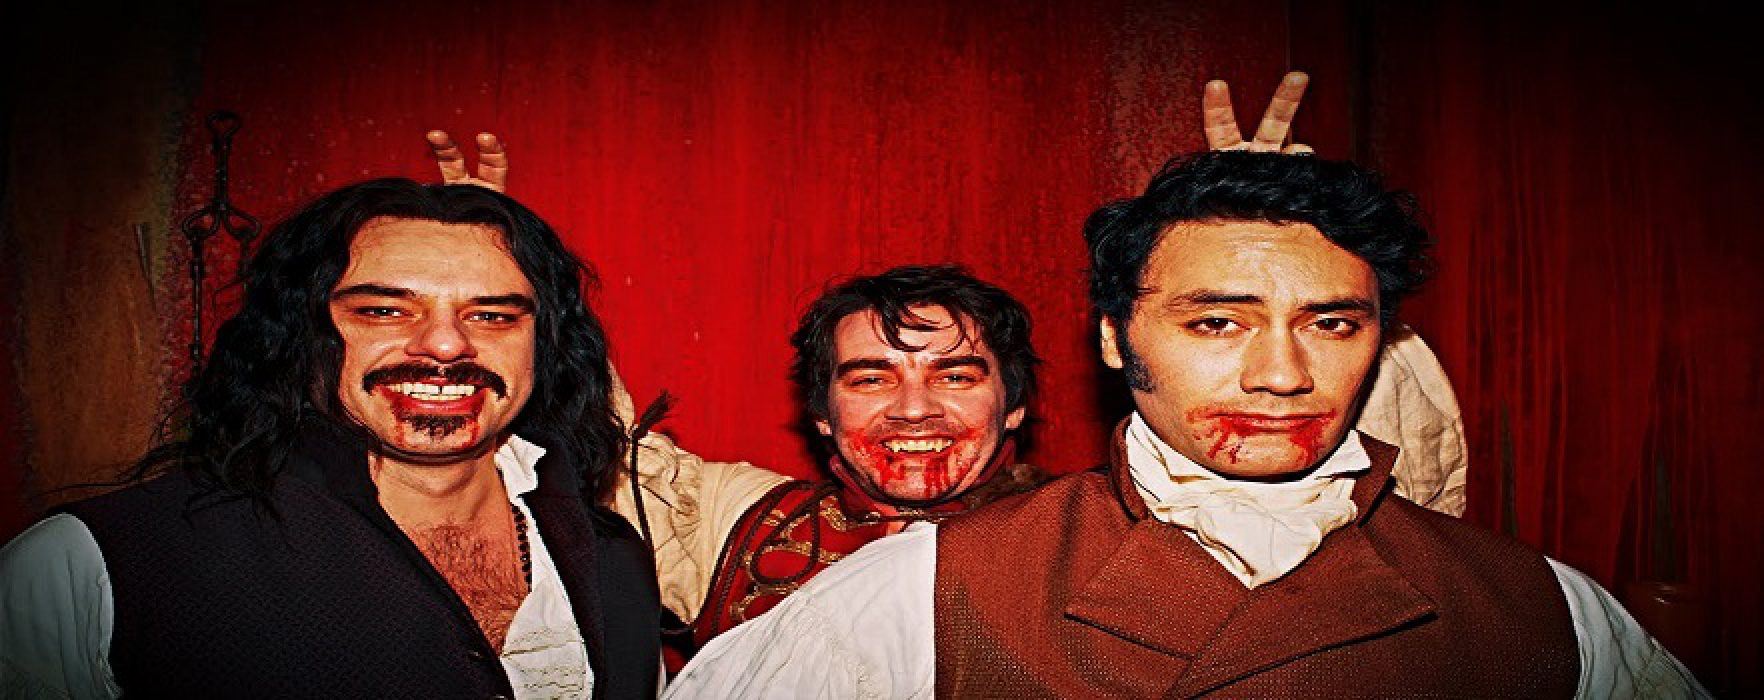 What We Do in the Shadows is Getting a Sequel